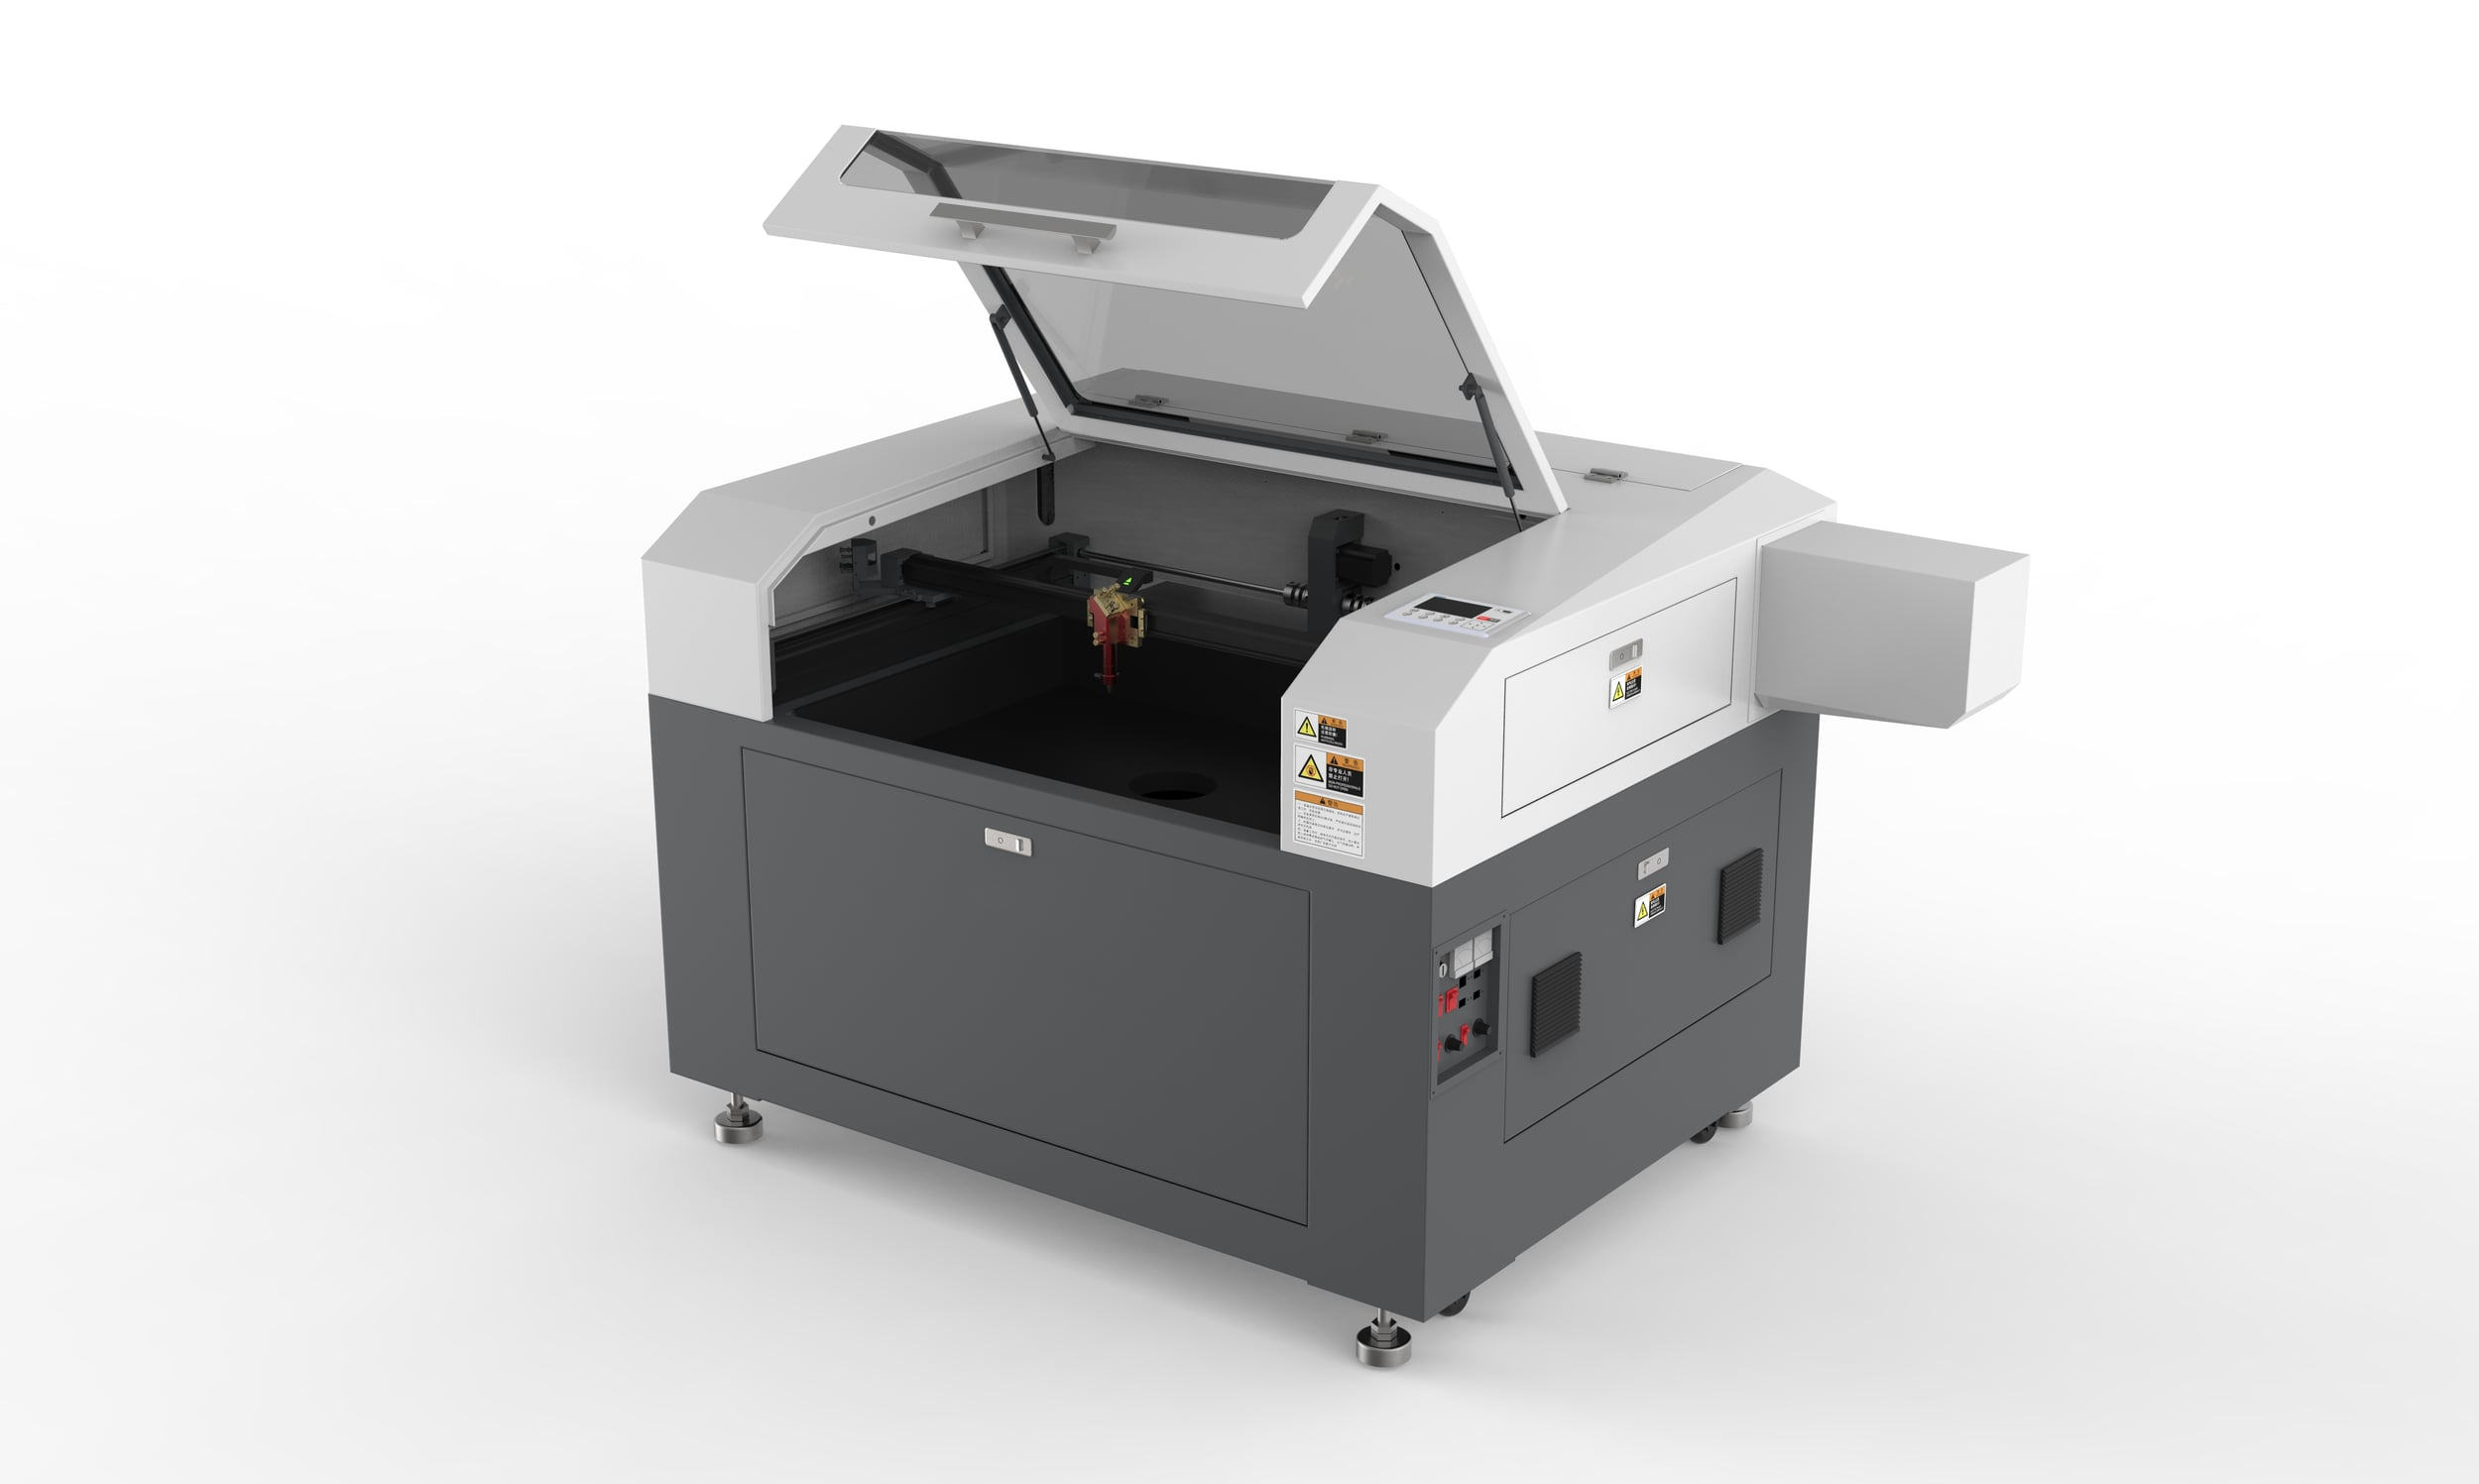 SP-9006S - SP-9006S is our most popular unit. Perfect for small sized business. Equipped with the best quality components, the SP-9006S can cut and engrave at high speeds with high-resolution.Like all other Spark machines, it is comes standard with the SparkWarranty.